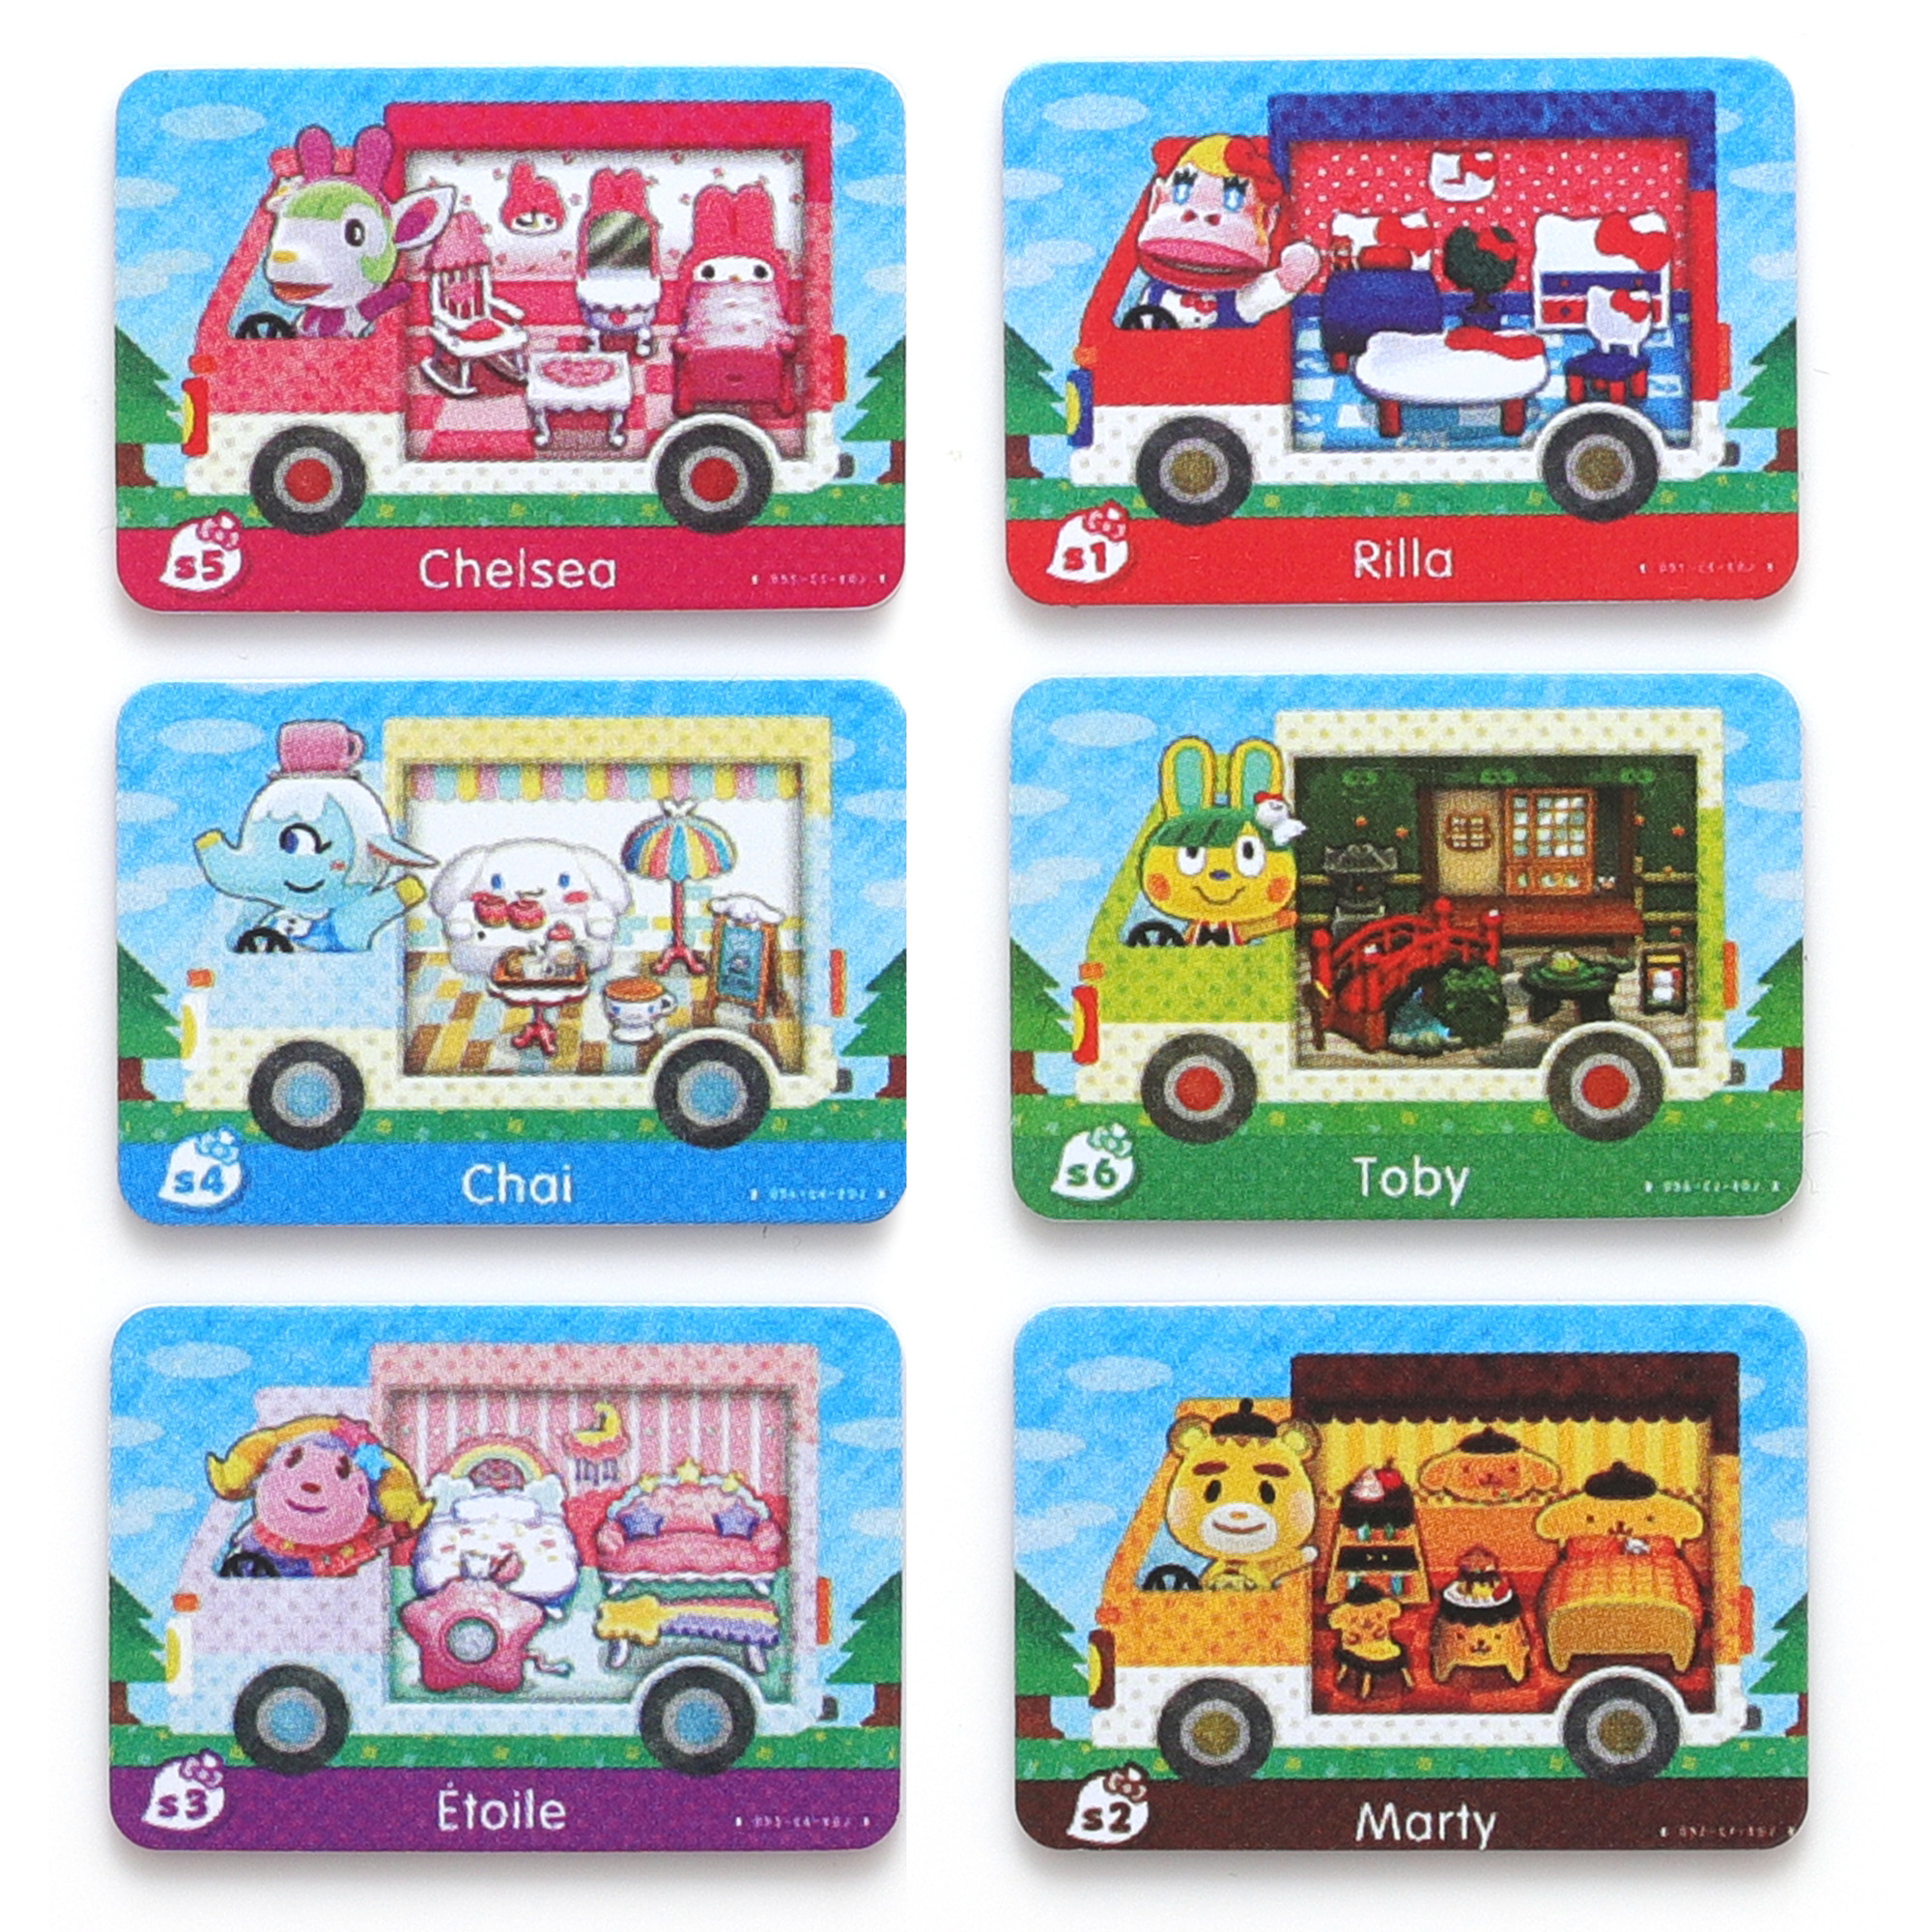 For ACNH Sanr1o Mini Card, 6 pcs RV Villager Furniture Compatible with Sw1tch/Sw1tch Lite/New 3DS(S1-S6